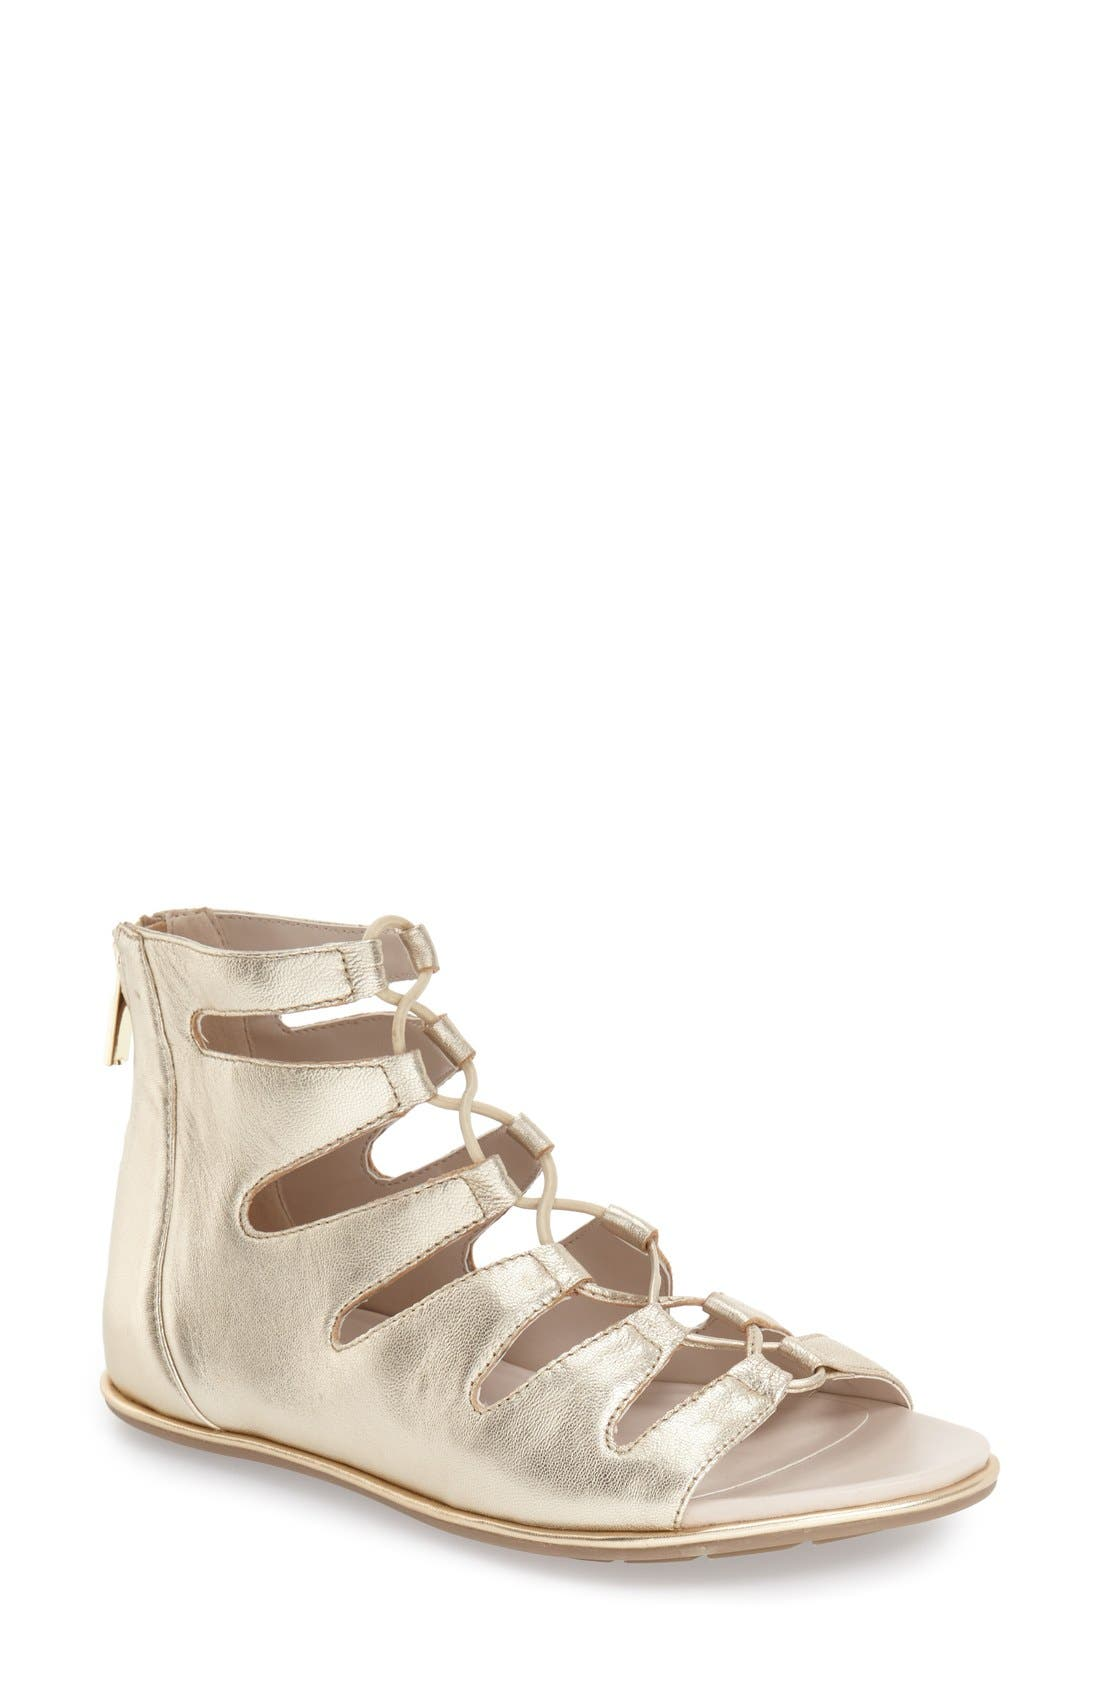 'Ollie' Cage Sandal,                         Main,                         color,